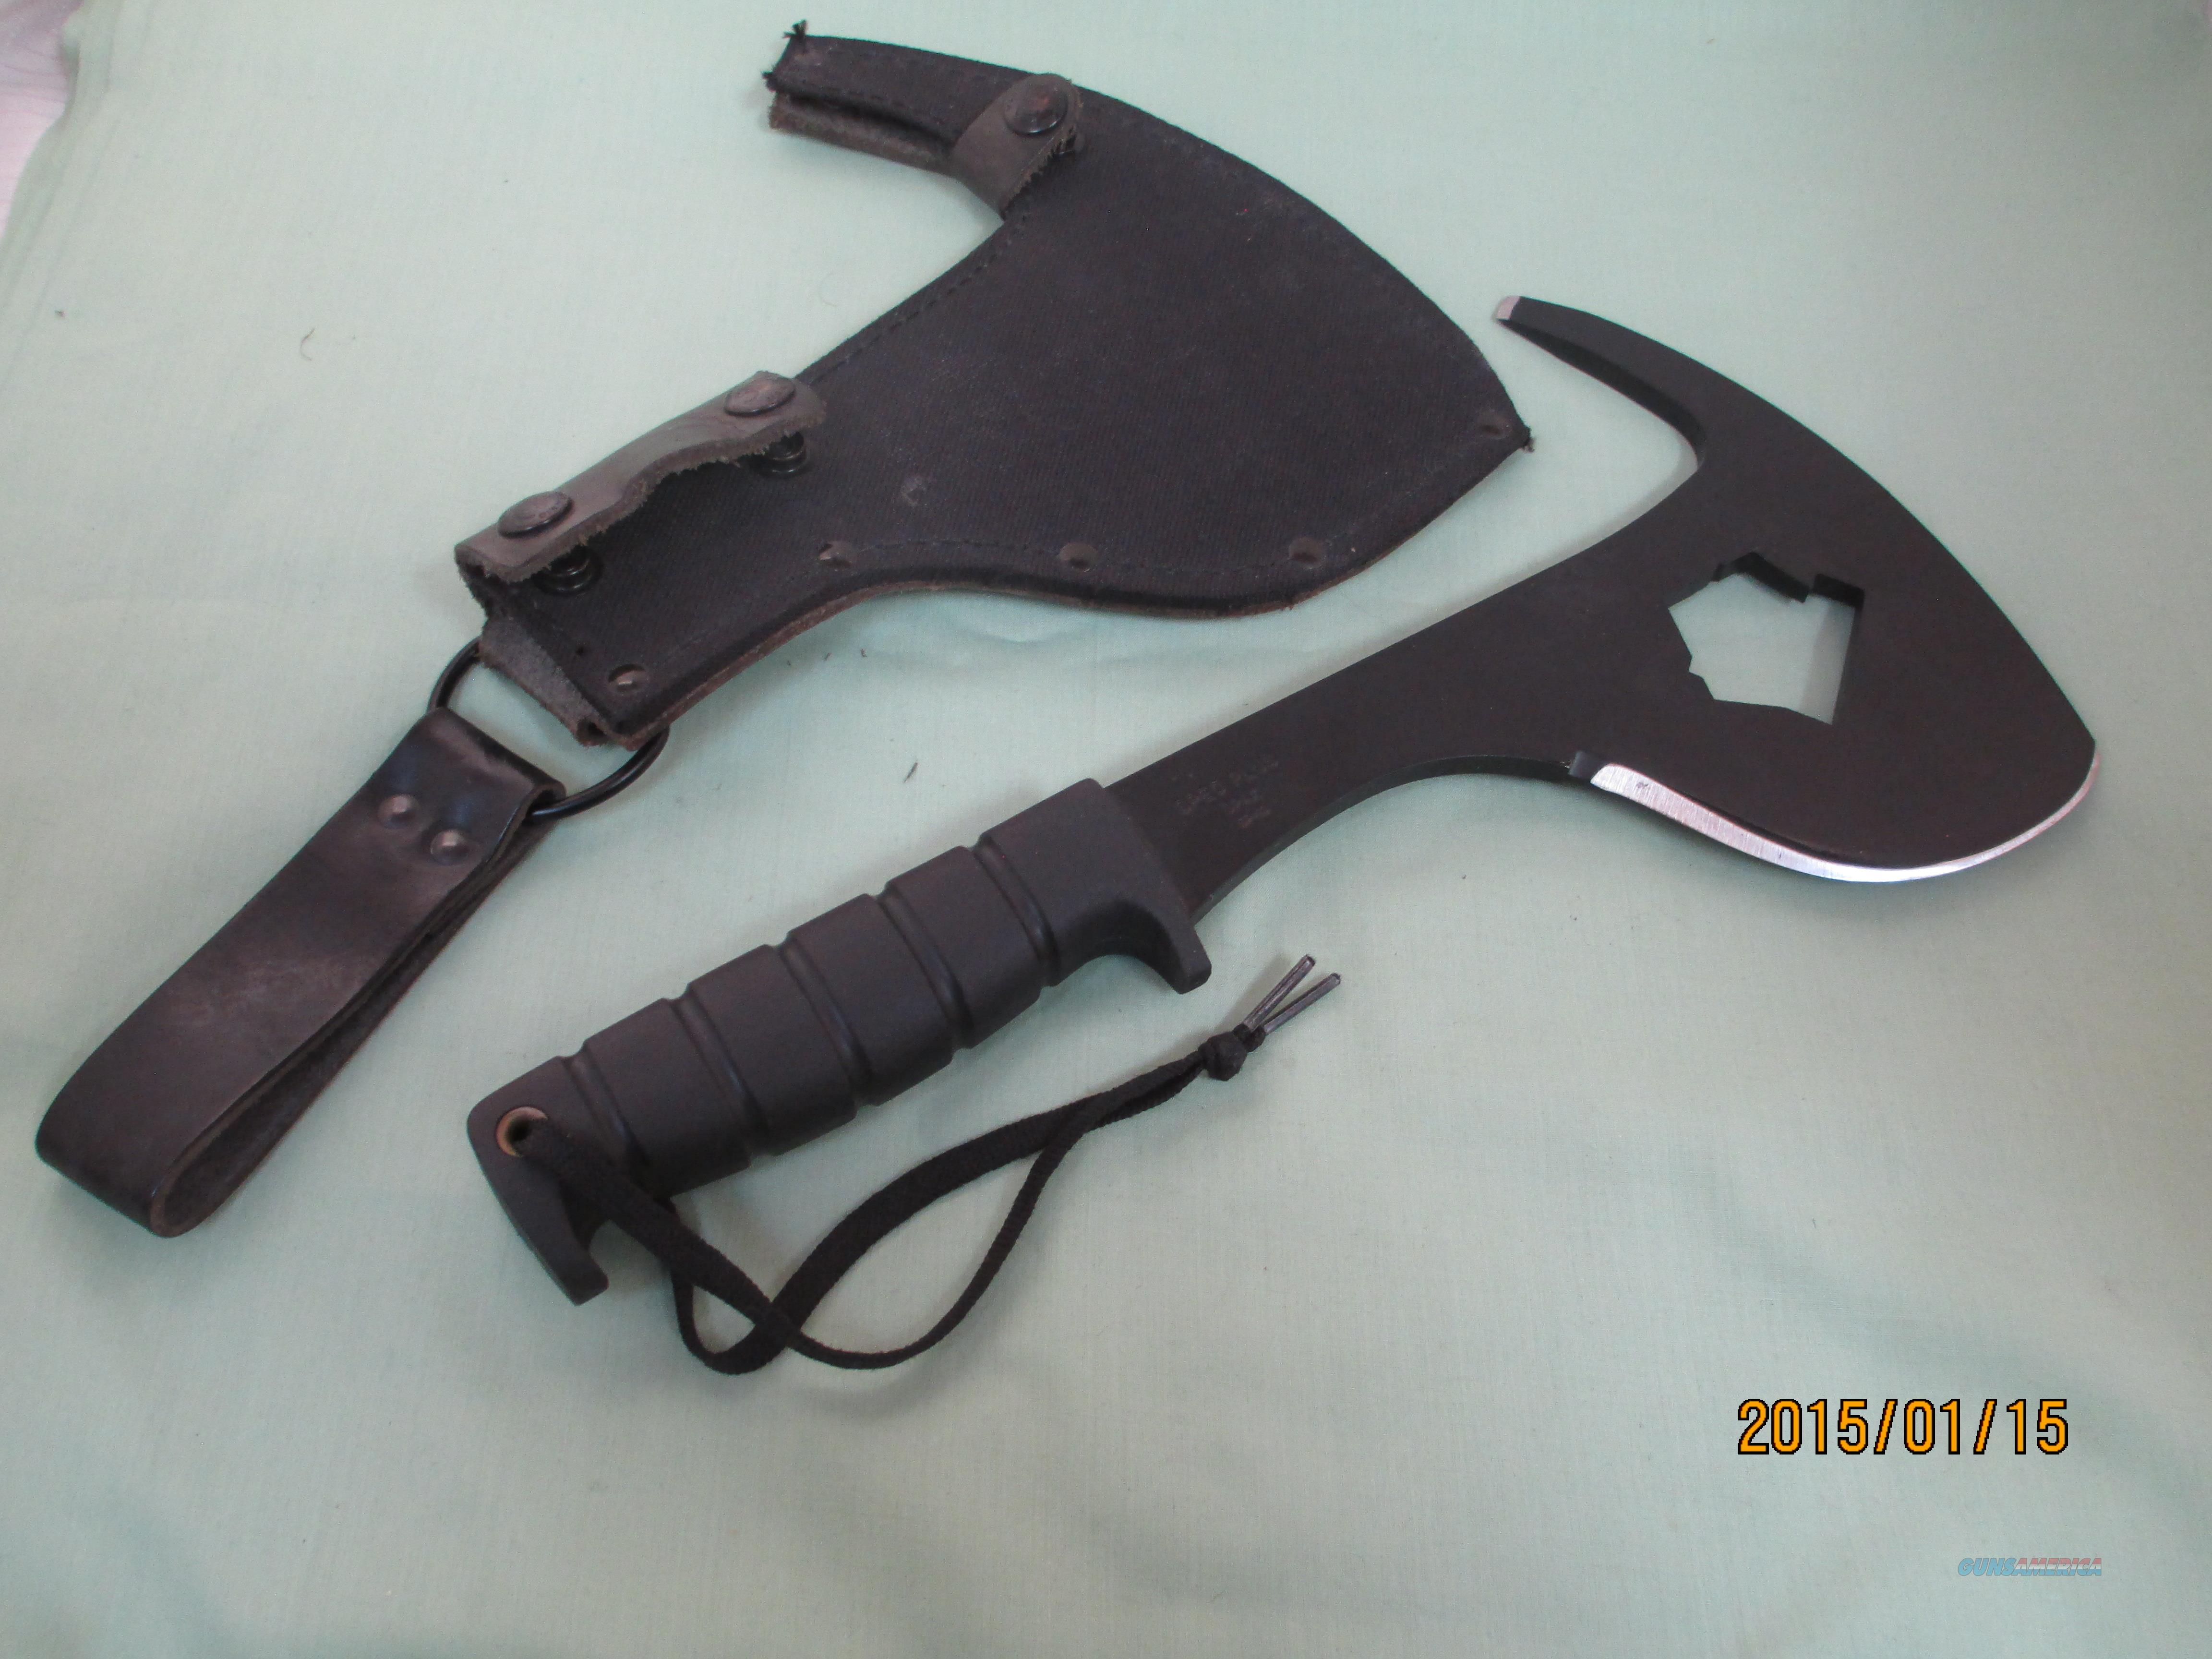 Ontario Knife Spec Plus SP16 Spax Machete W/Sheath 8420  Non-Guns > Knives/Swords > Other Bladed Weapons > Tomahawks/Axes